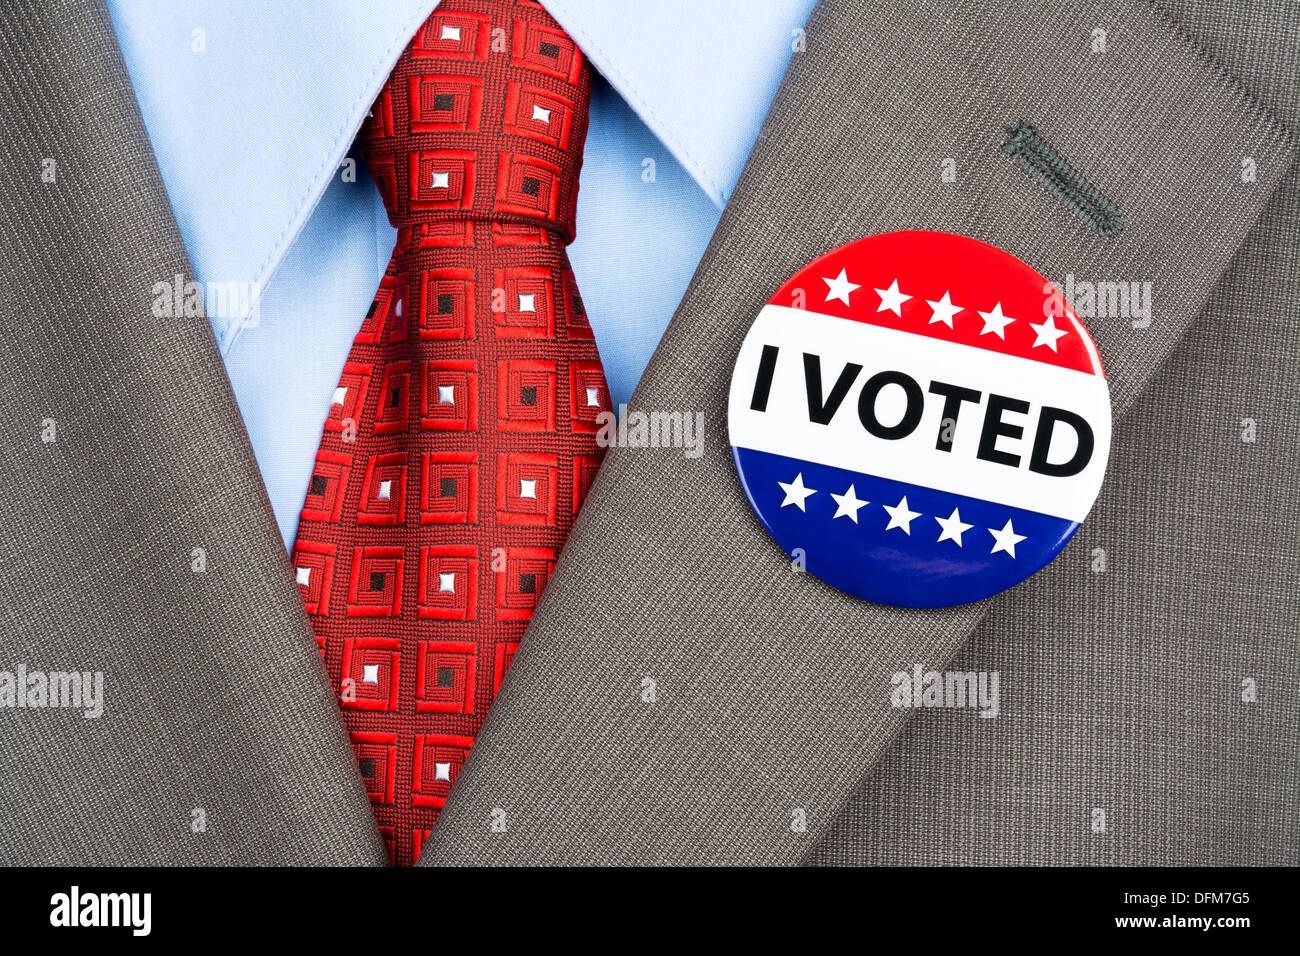 A businessman in a tan suit wearing his vote pin on his jacket lapel - Stock Image